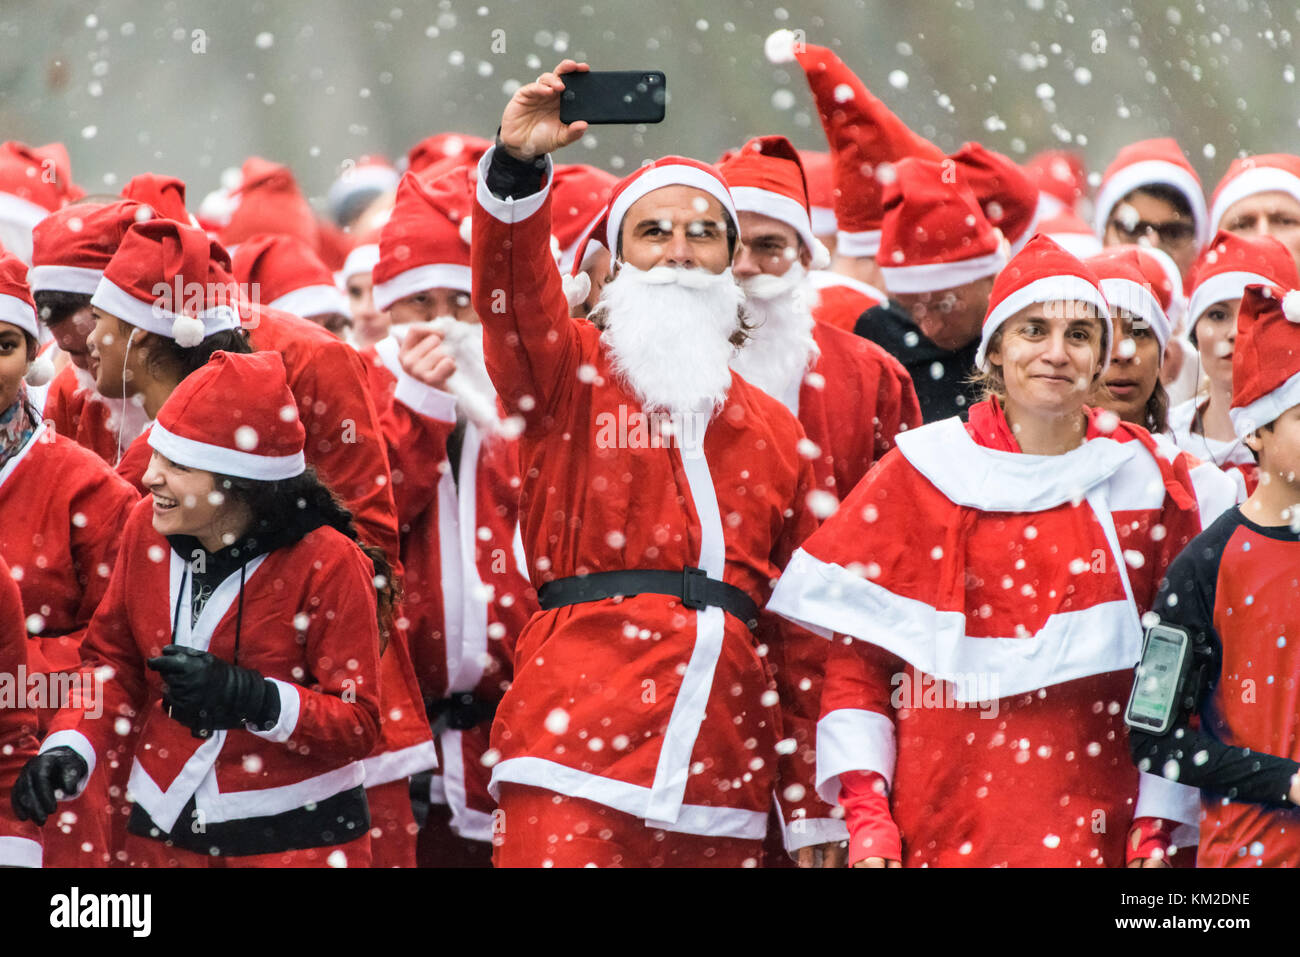 London, UK. 3rd Dec, 2017. Thousands join the annual Santa Run for charitable causes in Victoria Park. Credit: Guy - Stock Image